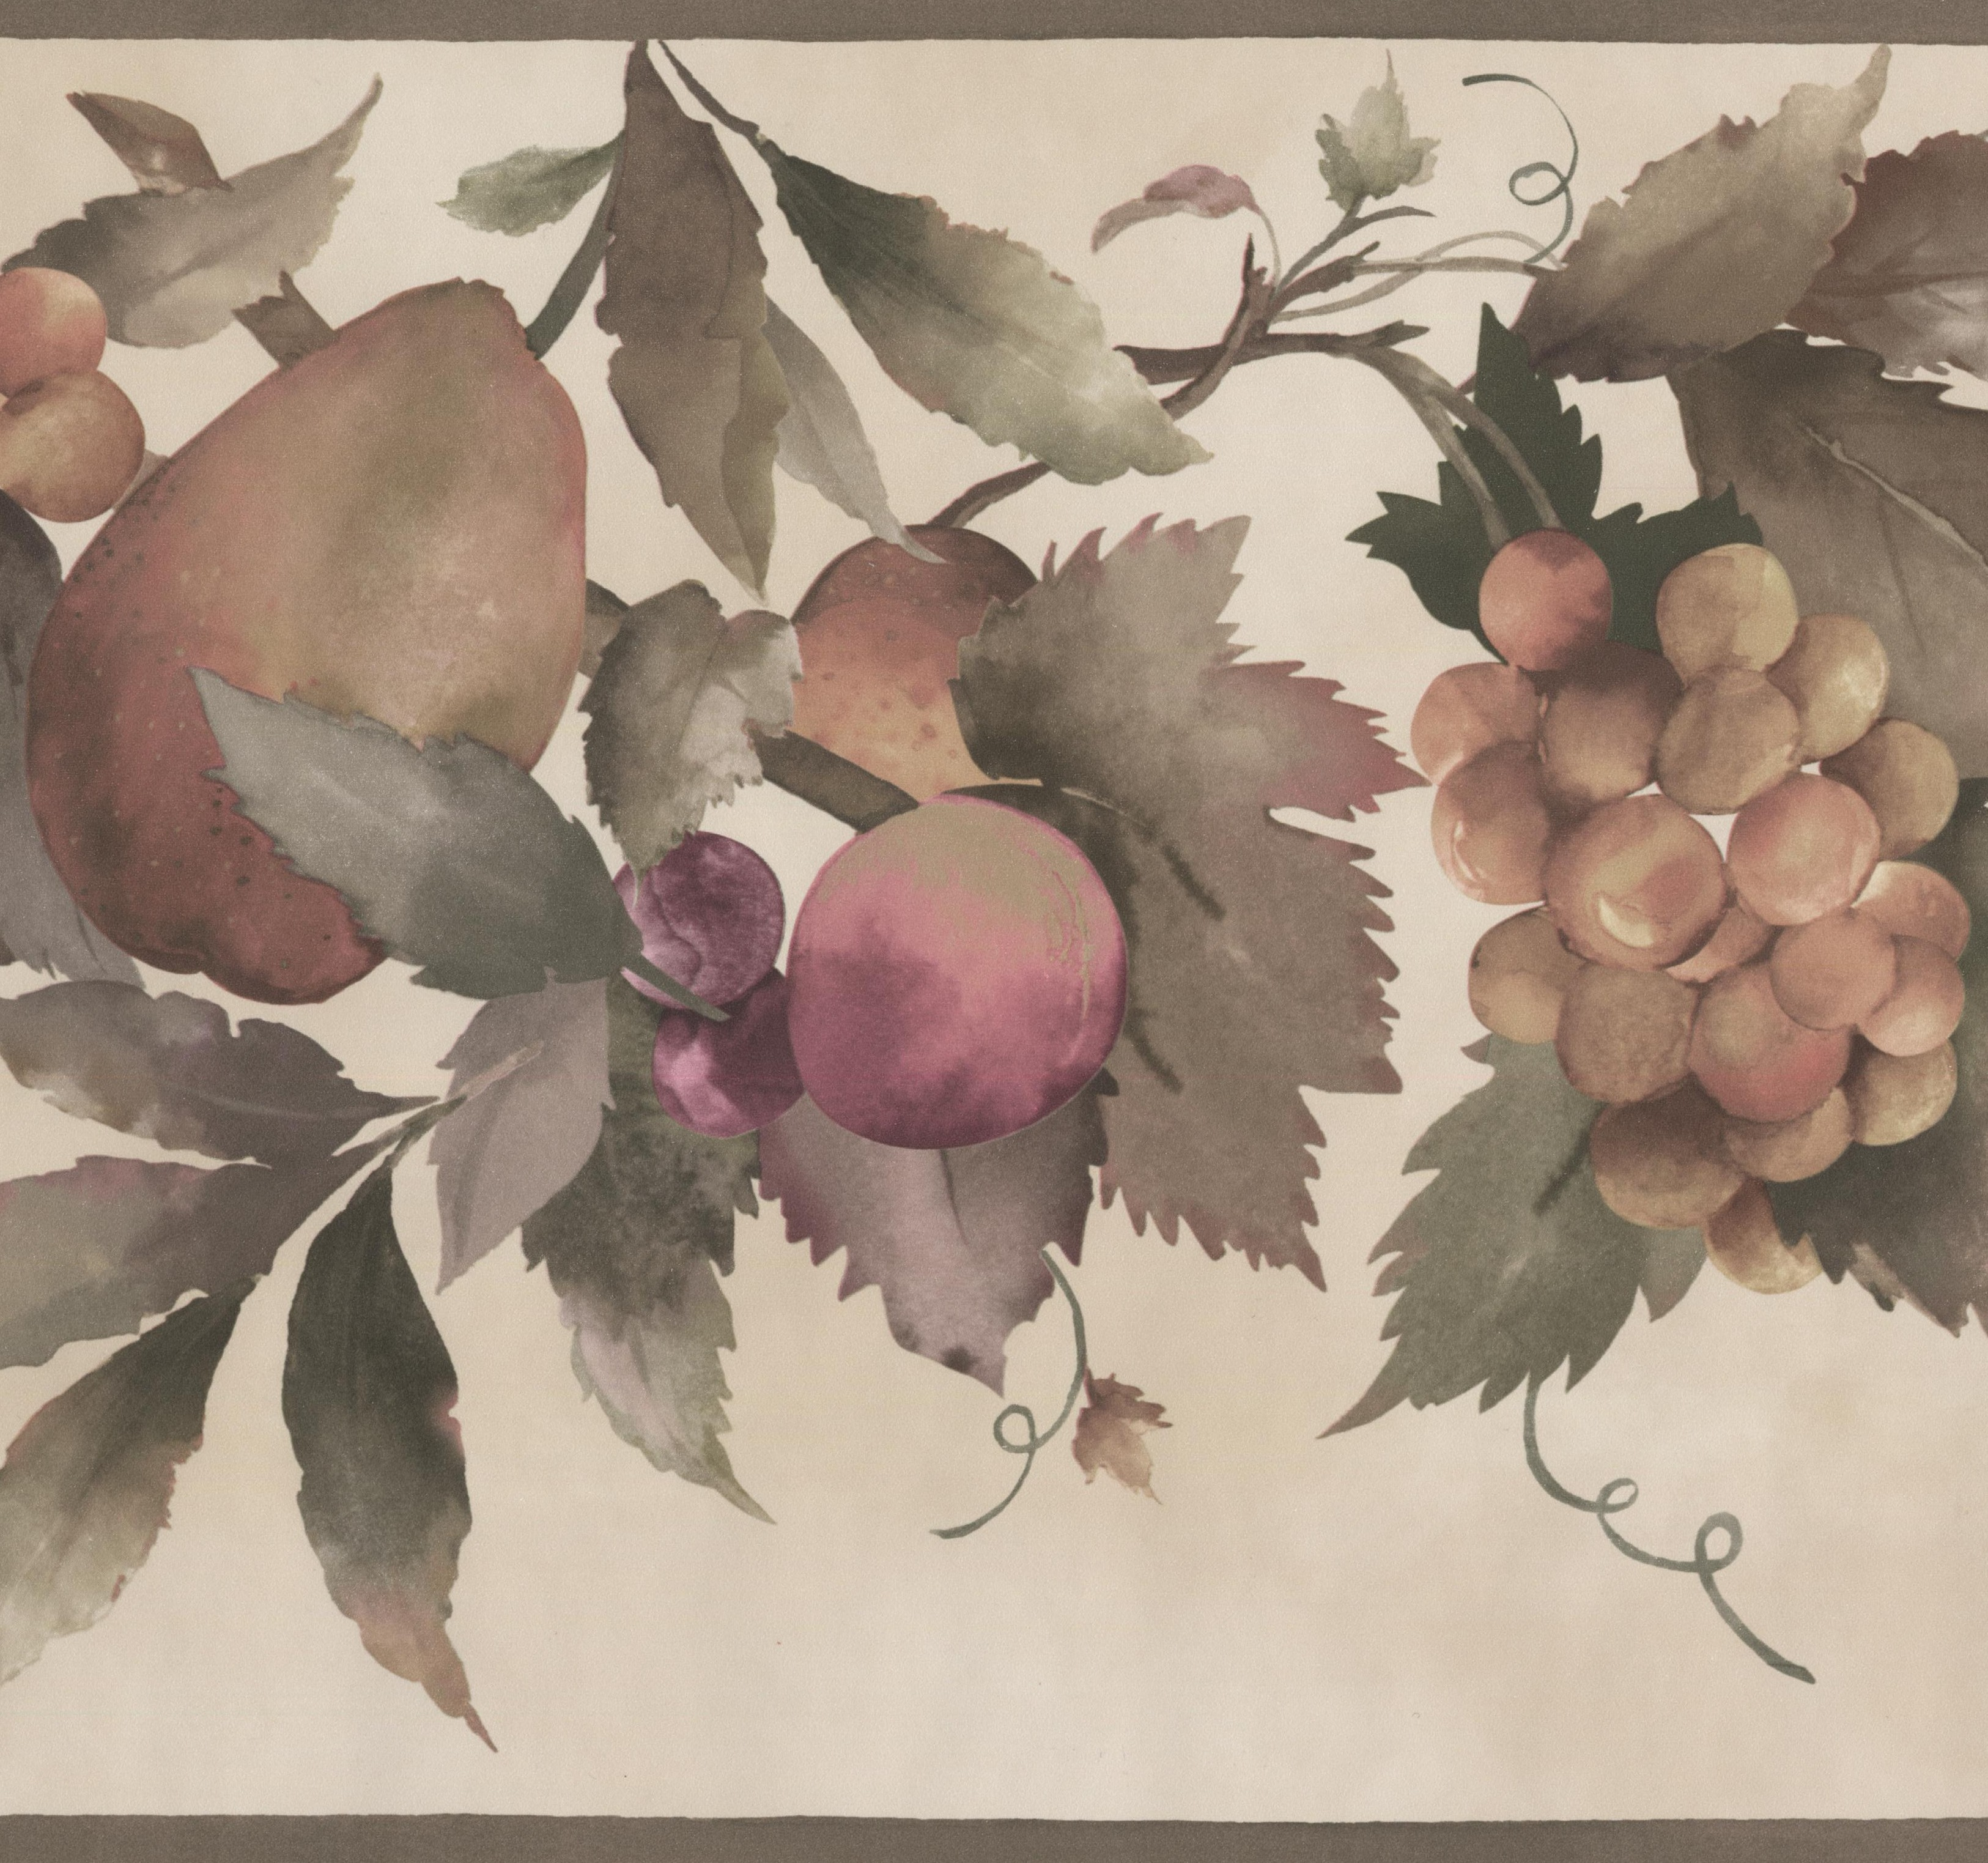 Pear Yellow and Purple Grapes on Vine Wide Tan Wallpaper Border Retro Design, Roll 15' x 10.5'' - image 3 de 3